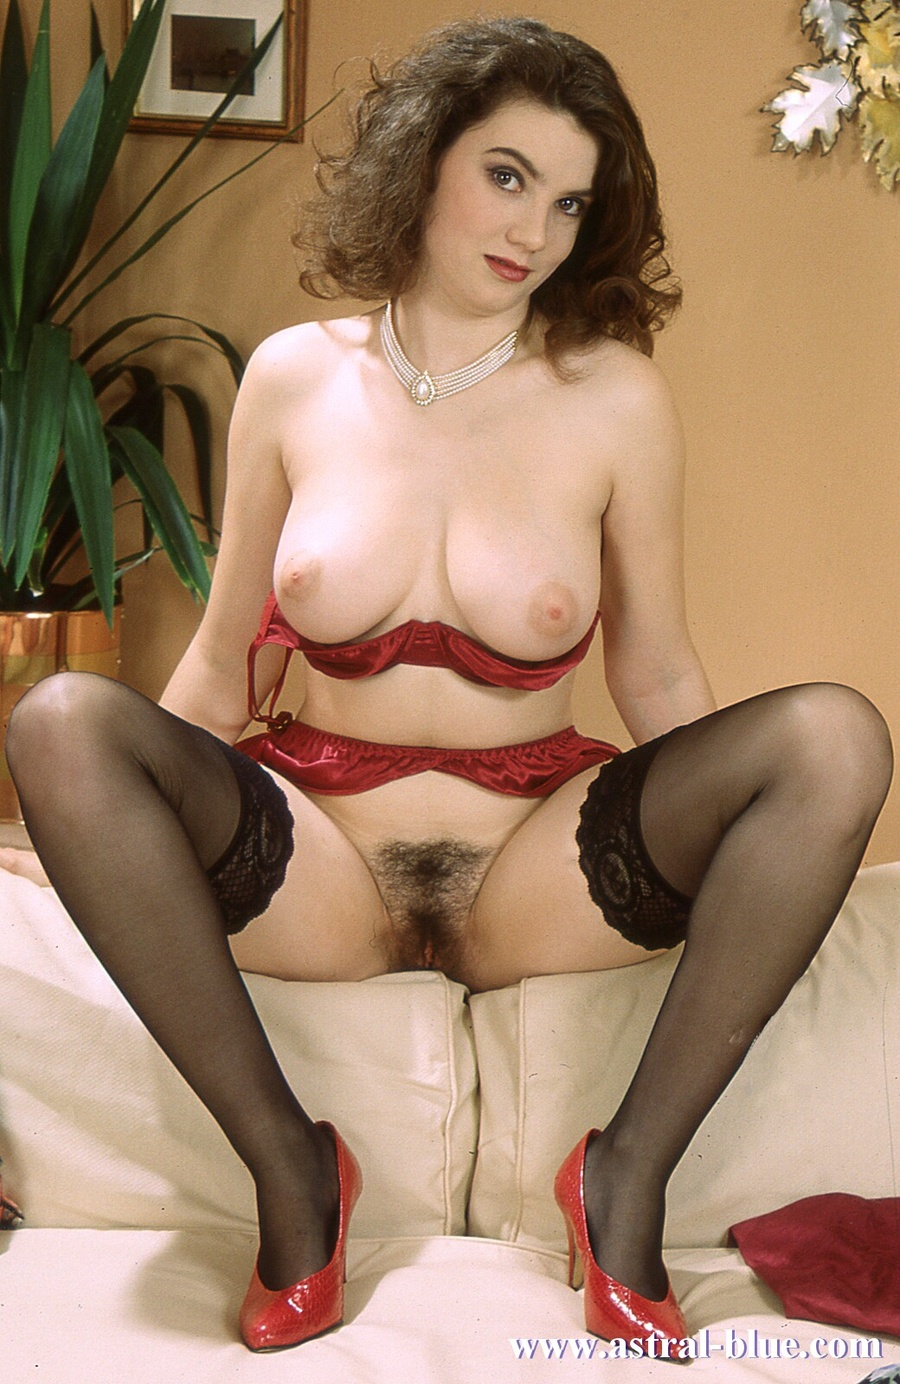 Xxx hairy big breasts photos